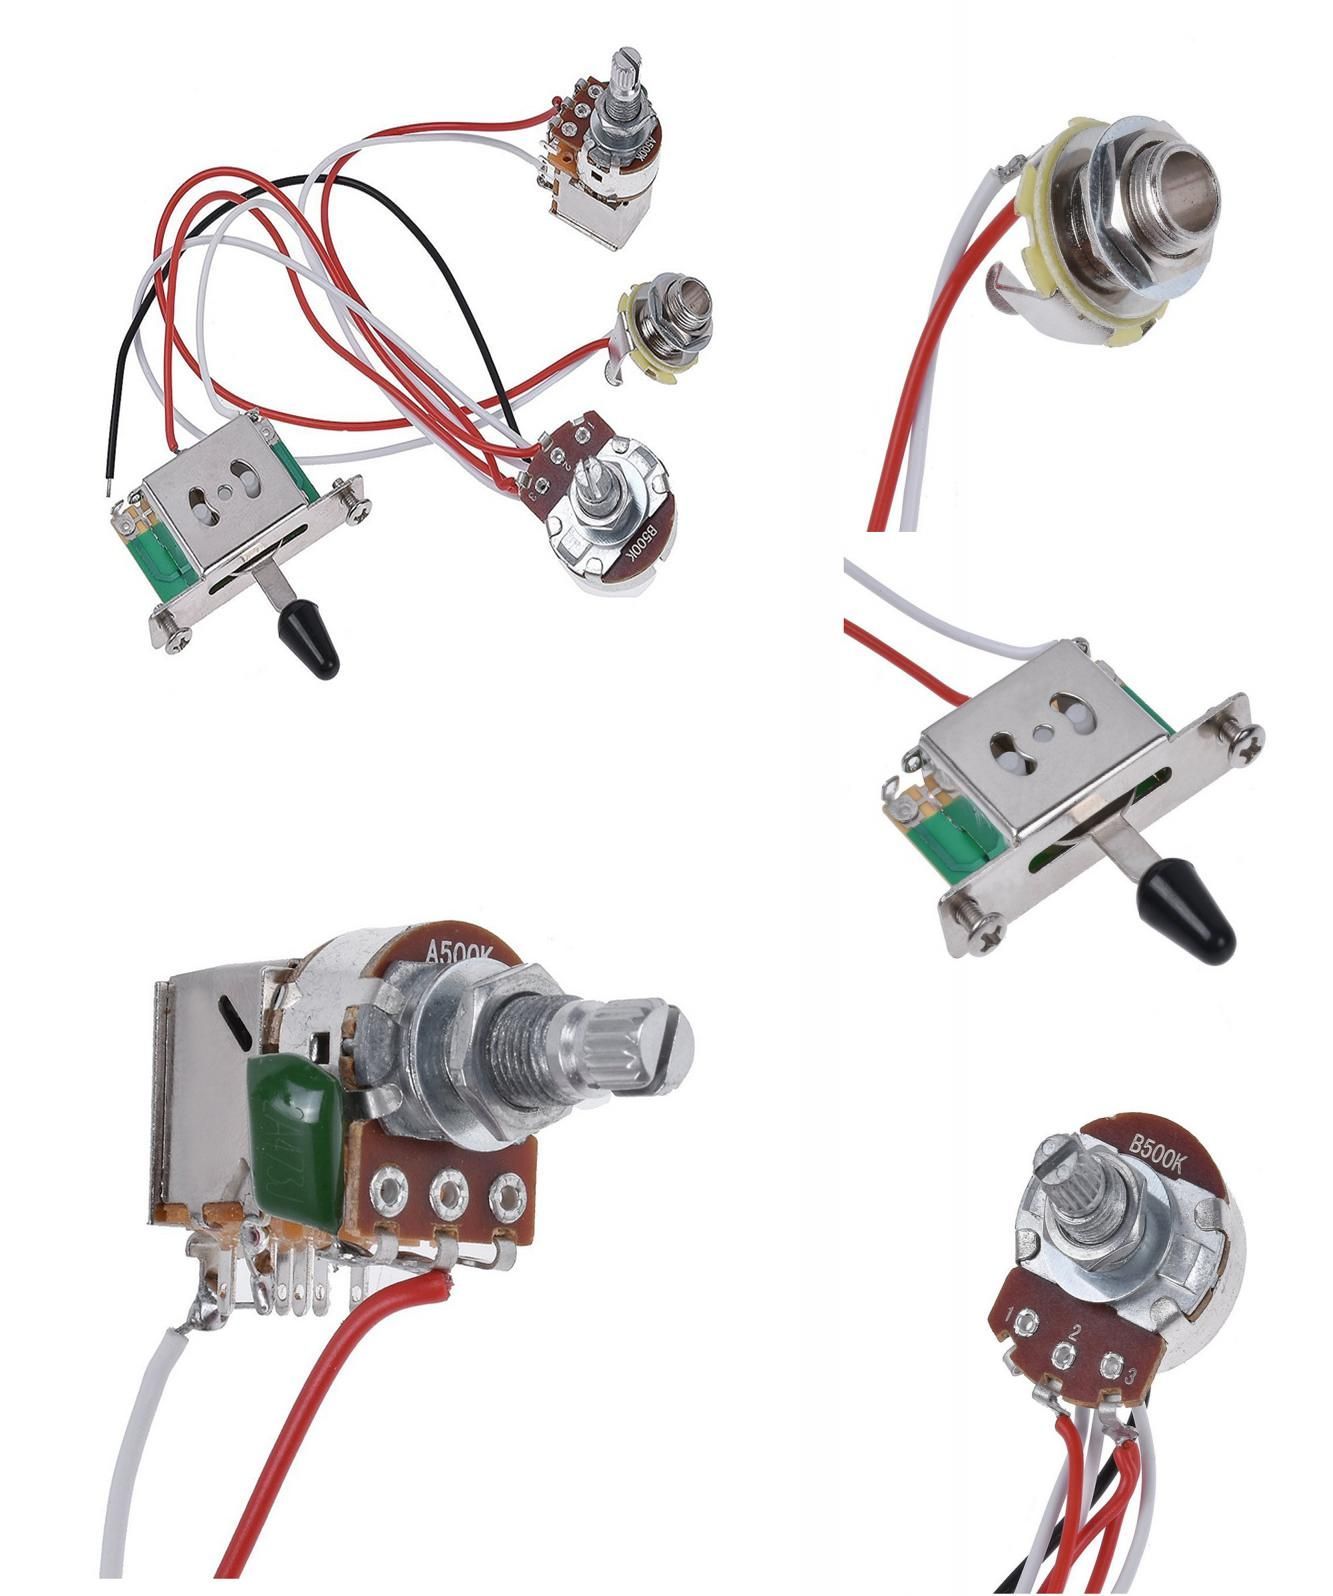 Visit To Buy Electric Guitar Wiring Harness Prewired Kit 3 Way Toggle Switch 1